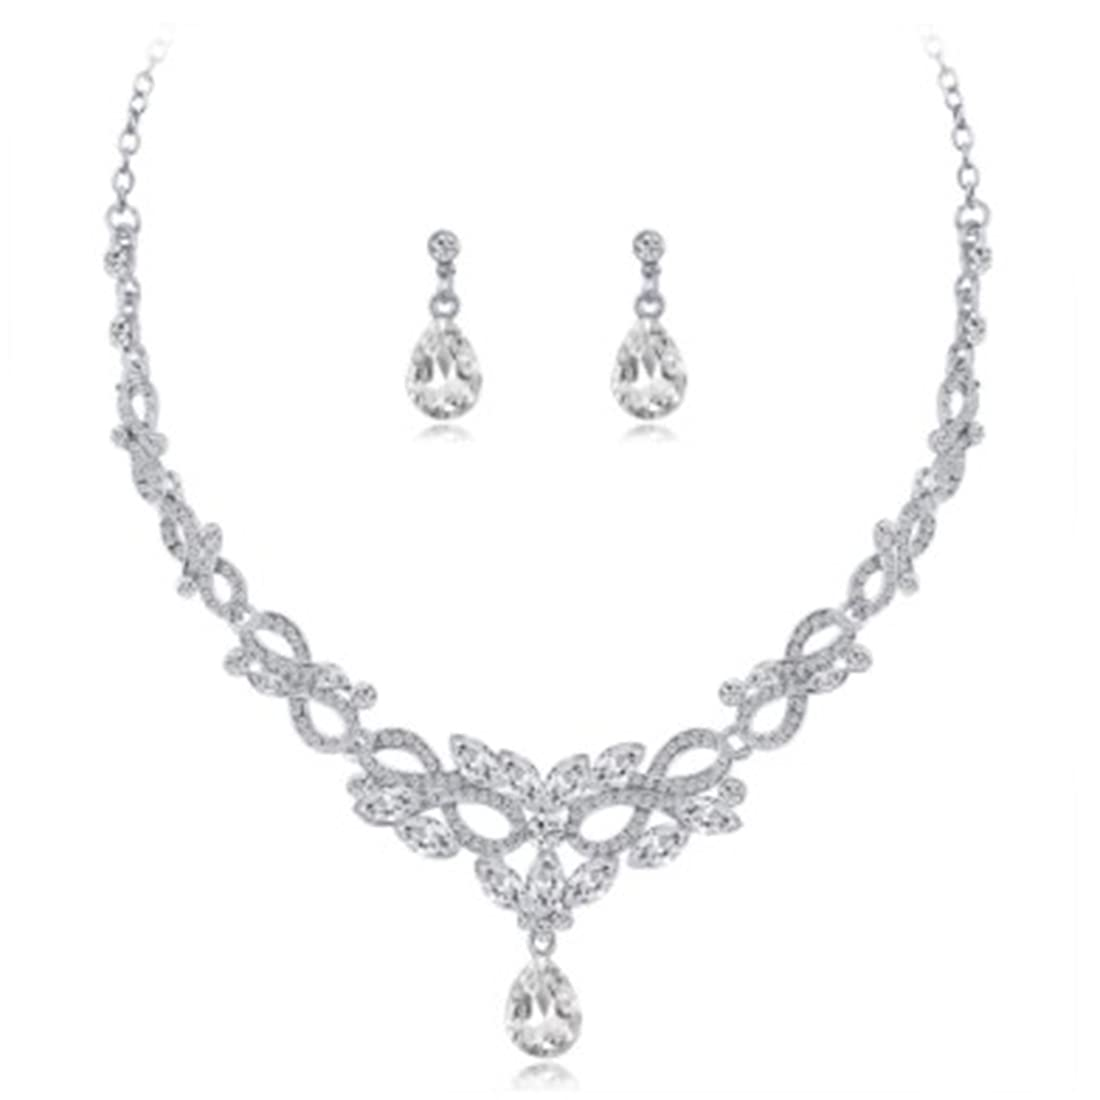 Gemcres Popular products Wedding Necklace Earrings Ranking TOP6 Bridal Jewelry Set Crystal